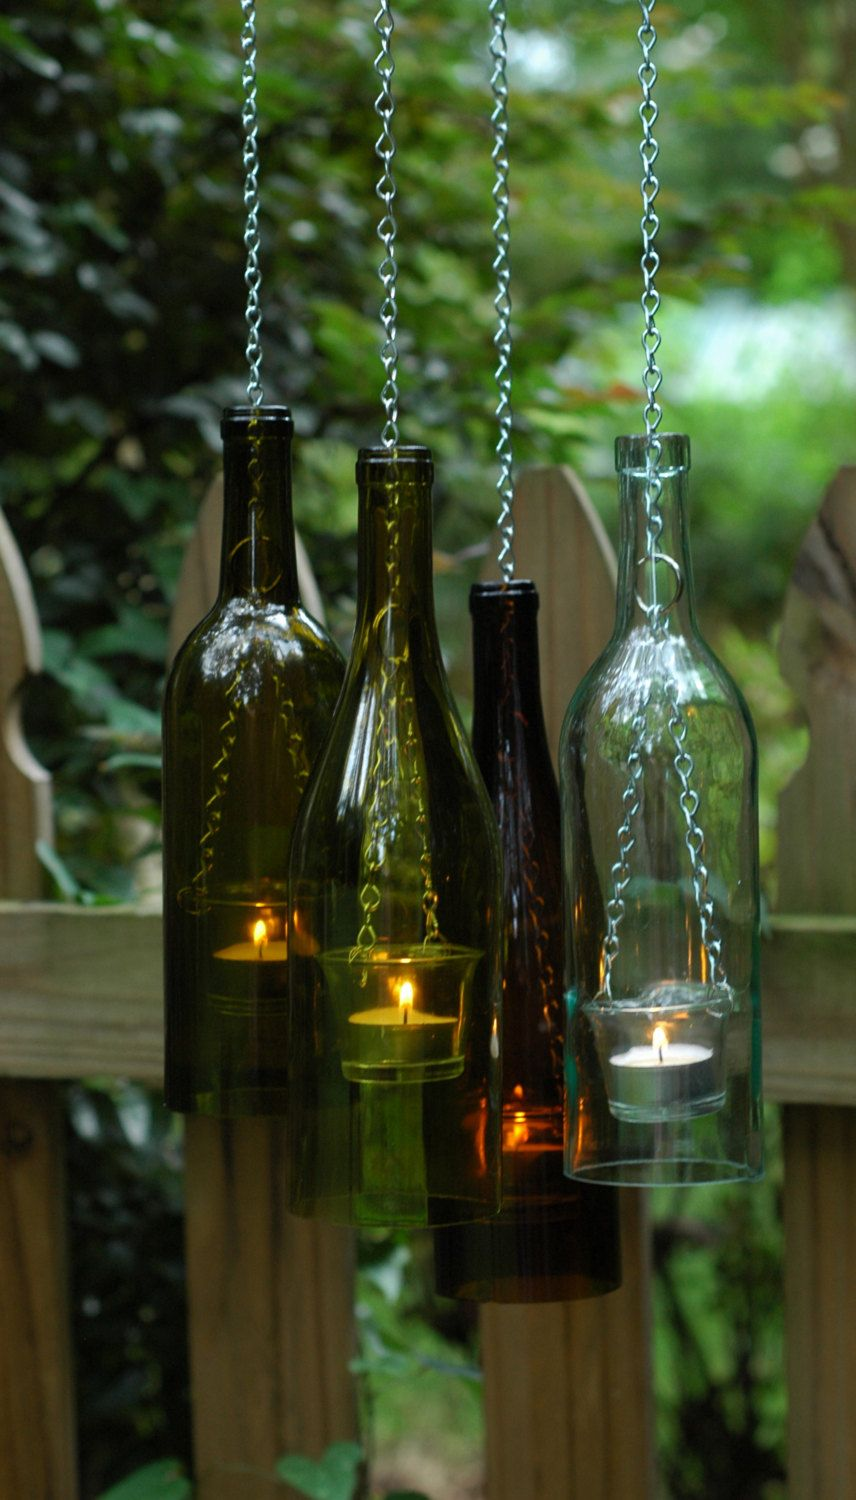 Bottle & Chain hanging WINE BOTTLE Lantern. Glass by lahaDESIGNS, $17.00  outdoor lighting !